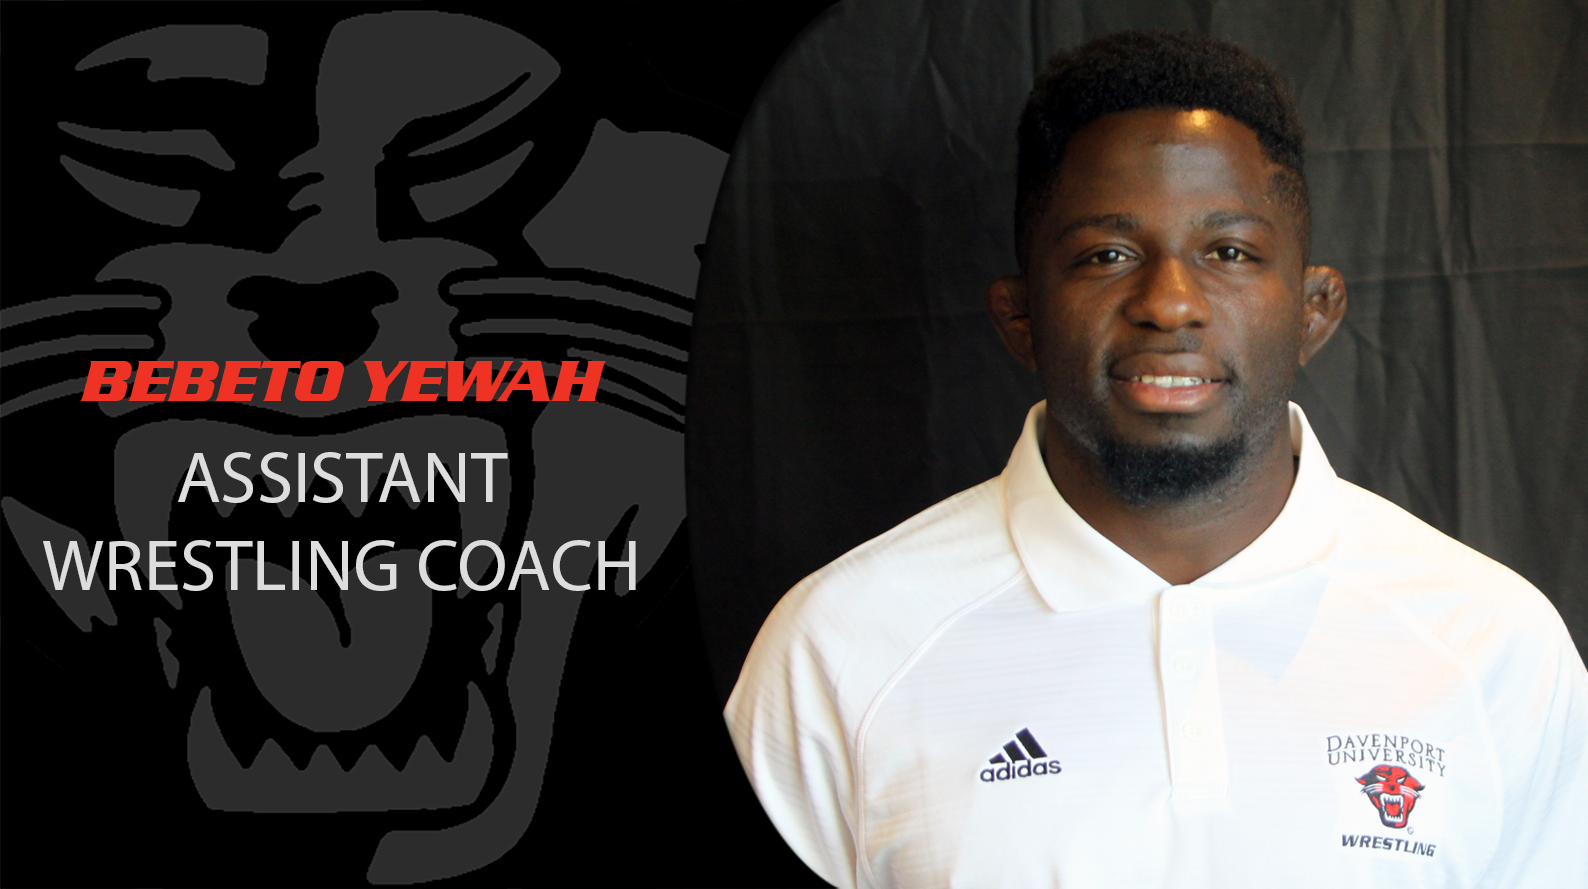 Bebeto Yewah promoted to wrestling assistant coach